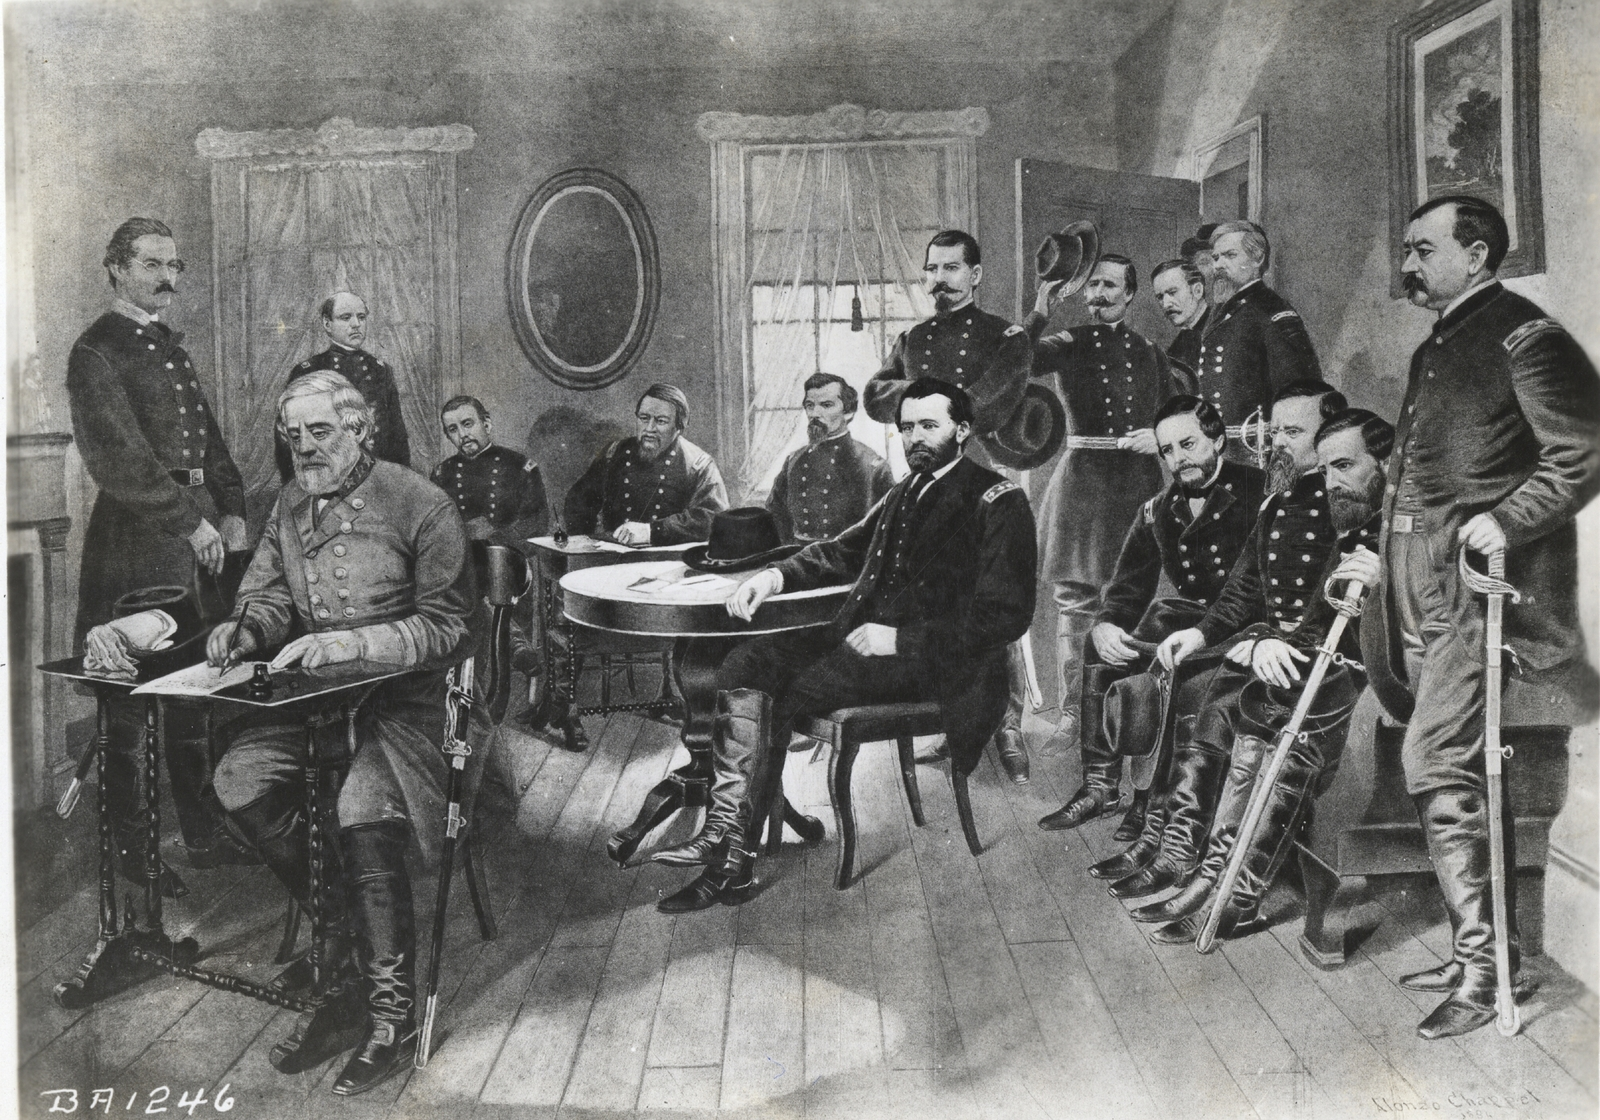 Photographic Reproduction of a Painting of General Robert E. Lee Signing the Surrender of the Confederate Armies to General Ulysses S. Grant at the McLean House, Appomattox, Virginia